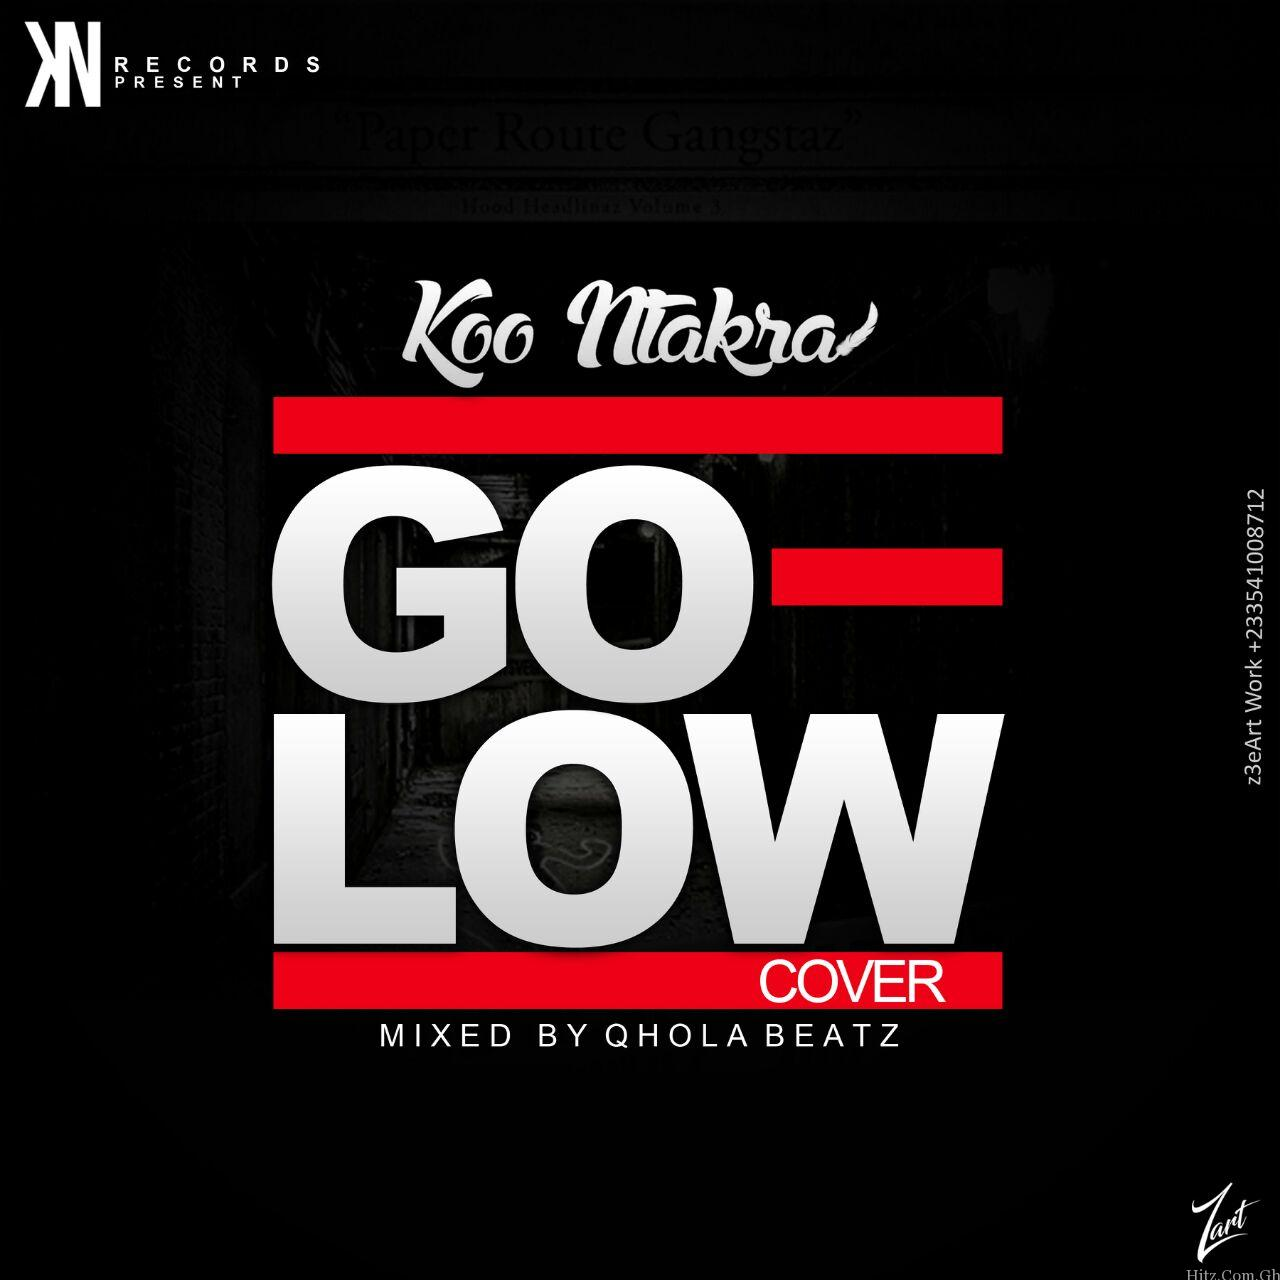 Koo Ntakra Go Low Cover Mixed by Qhola Beat